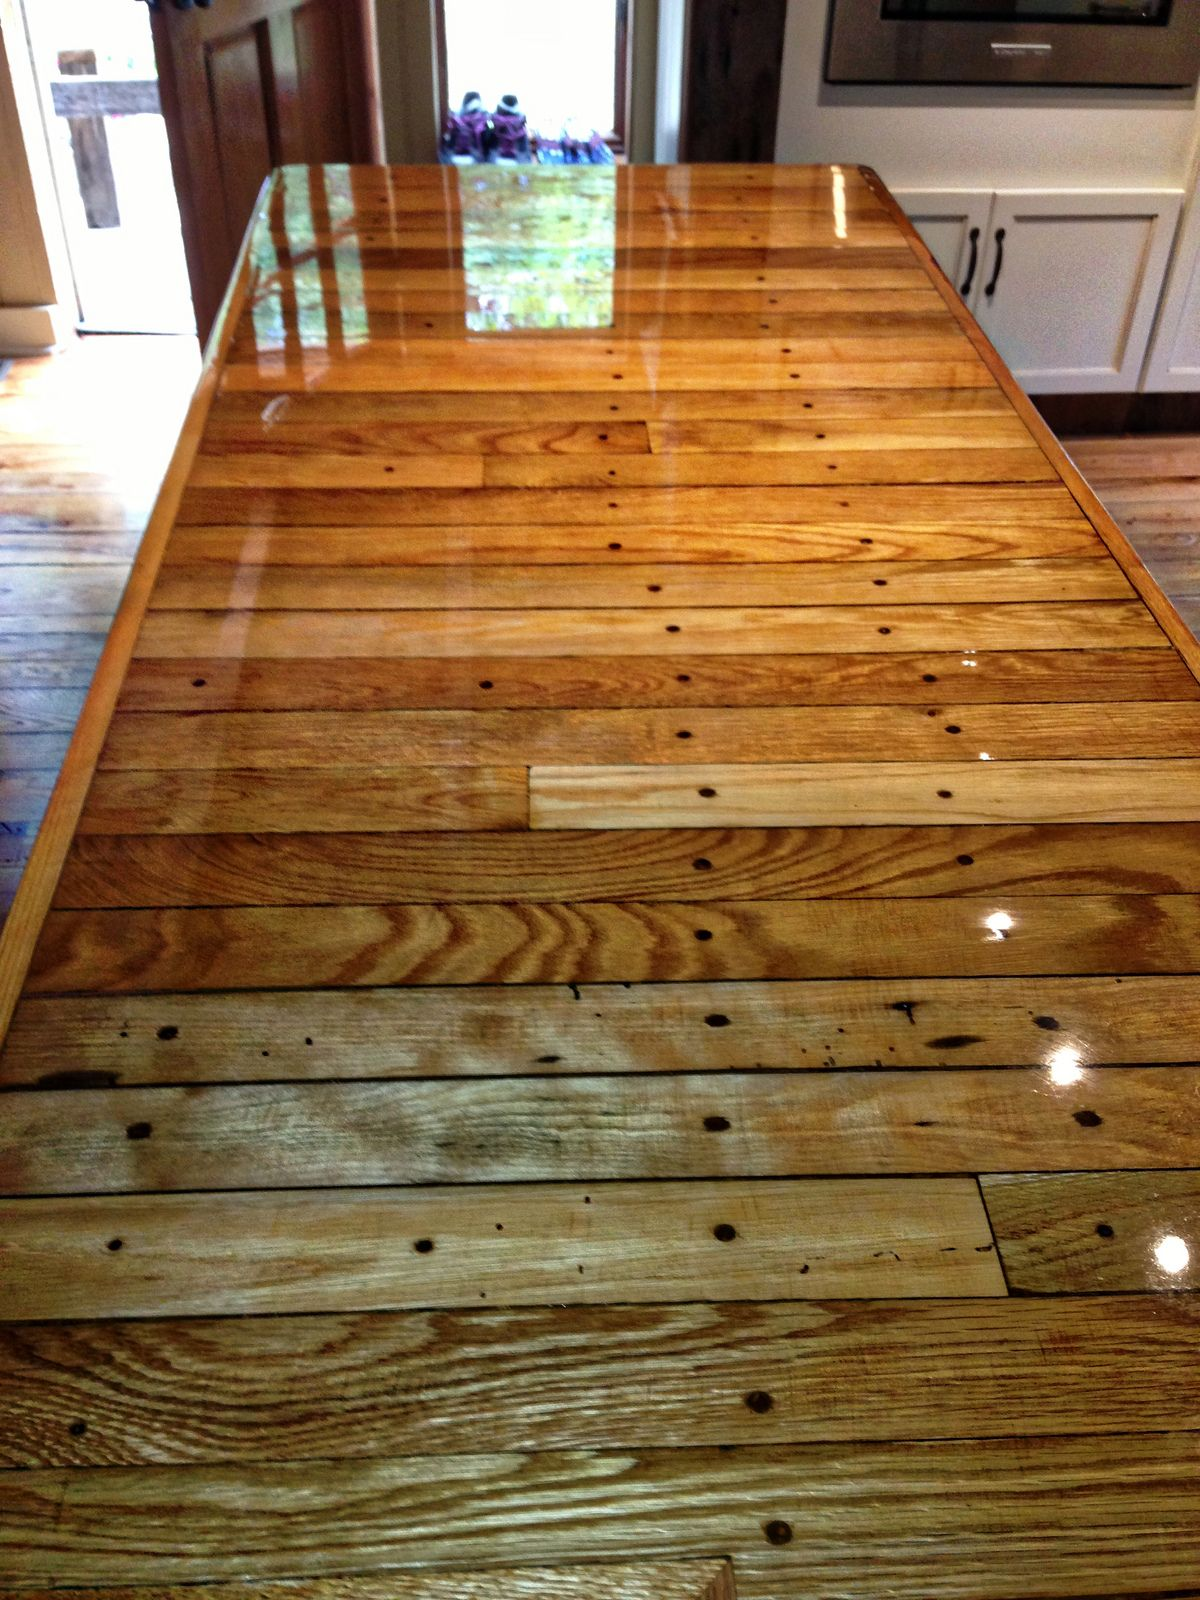 Waterproof Wood Countertop Ultraclear Epoxy Photo Gallery Transformation Des Muebles